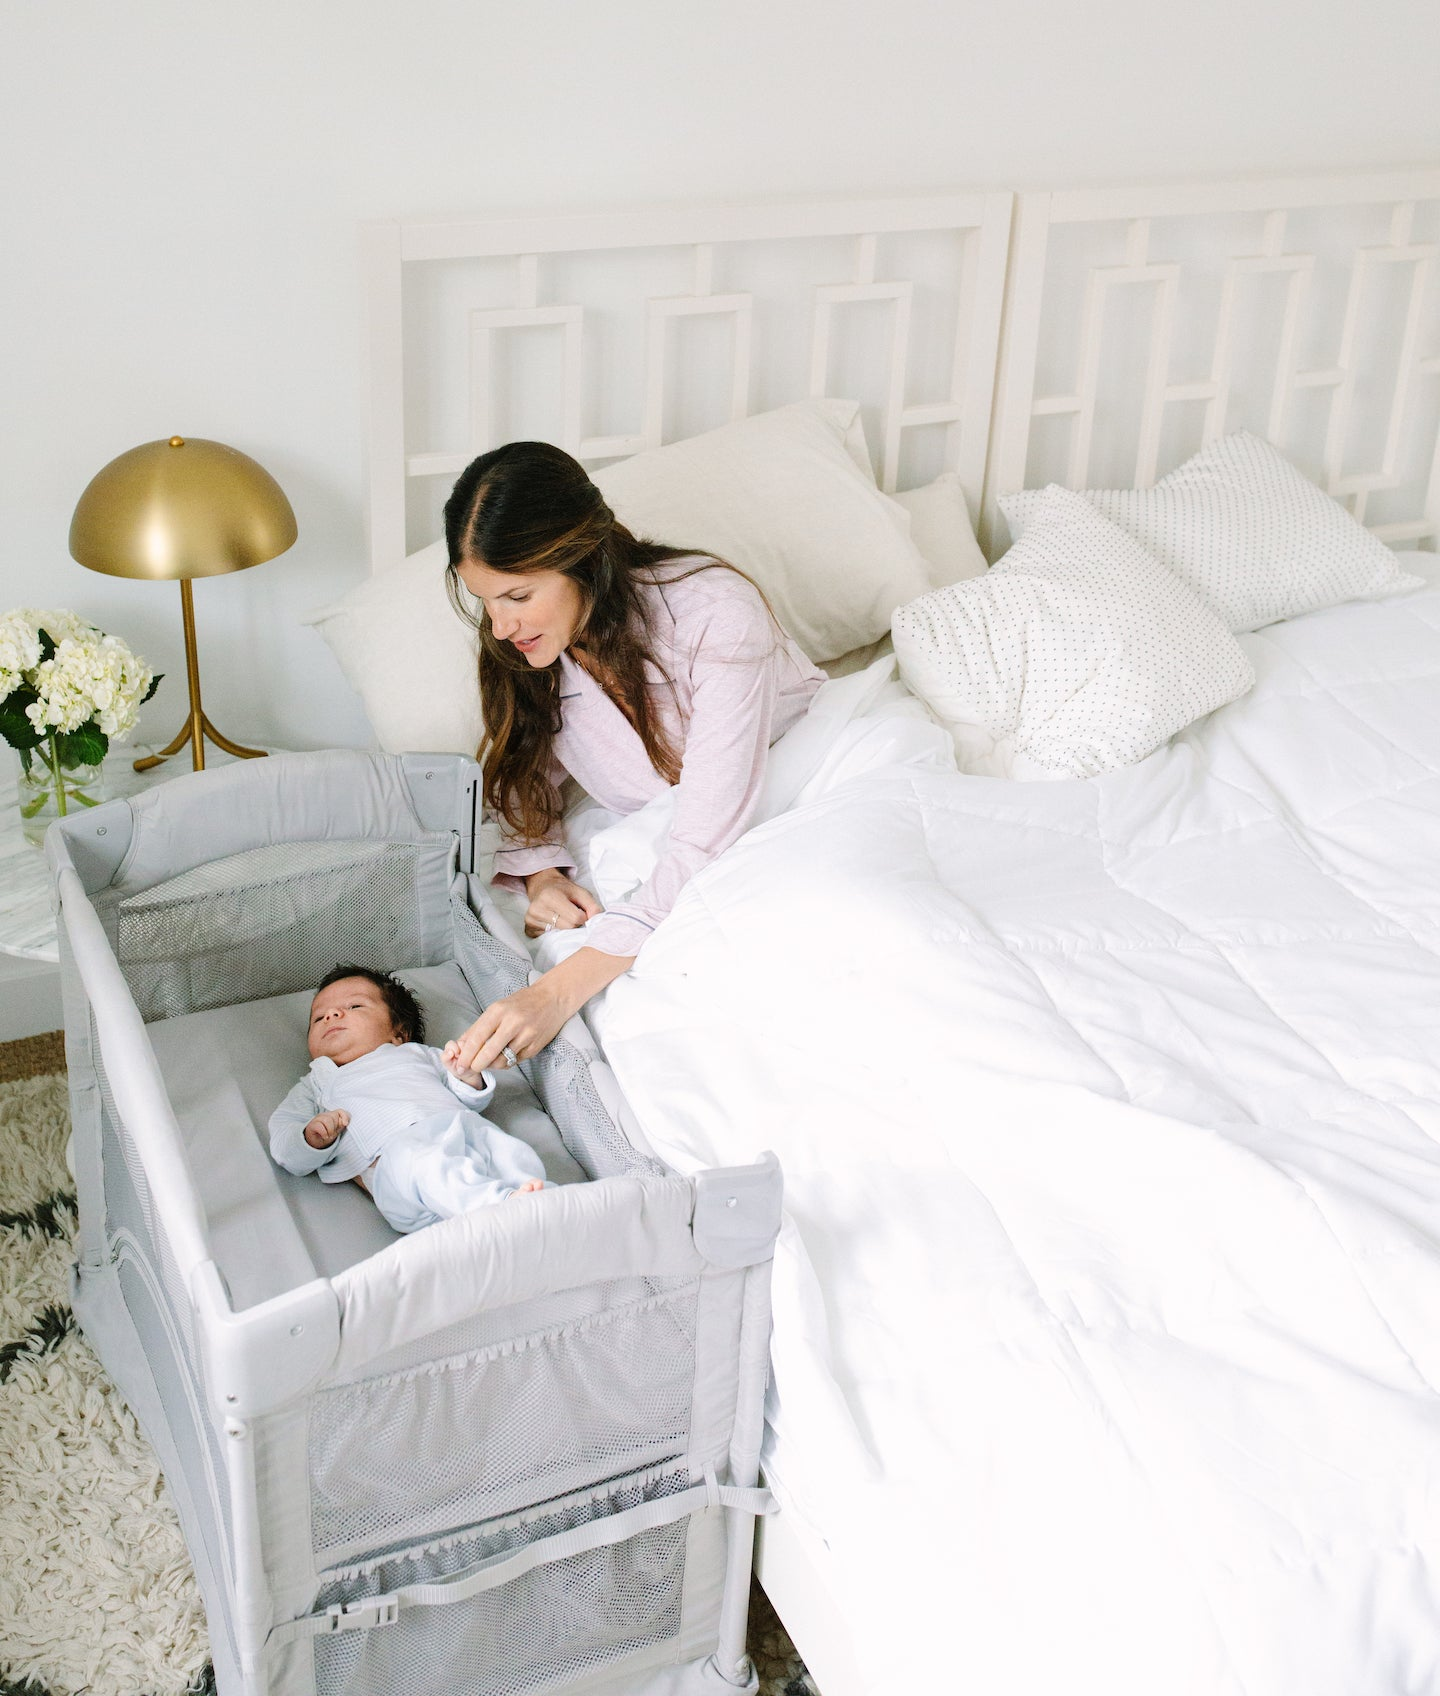 Arm's Reach Co-Sleeper baby bassinet